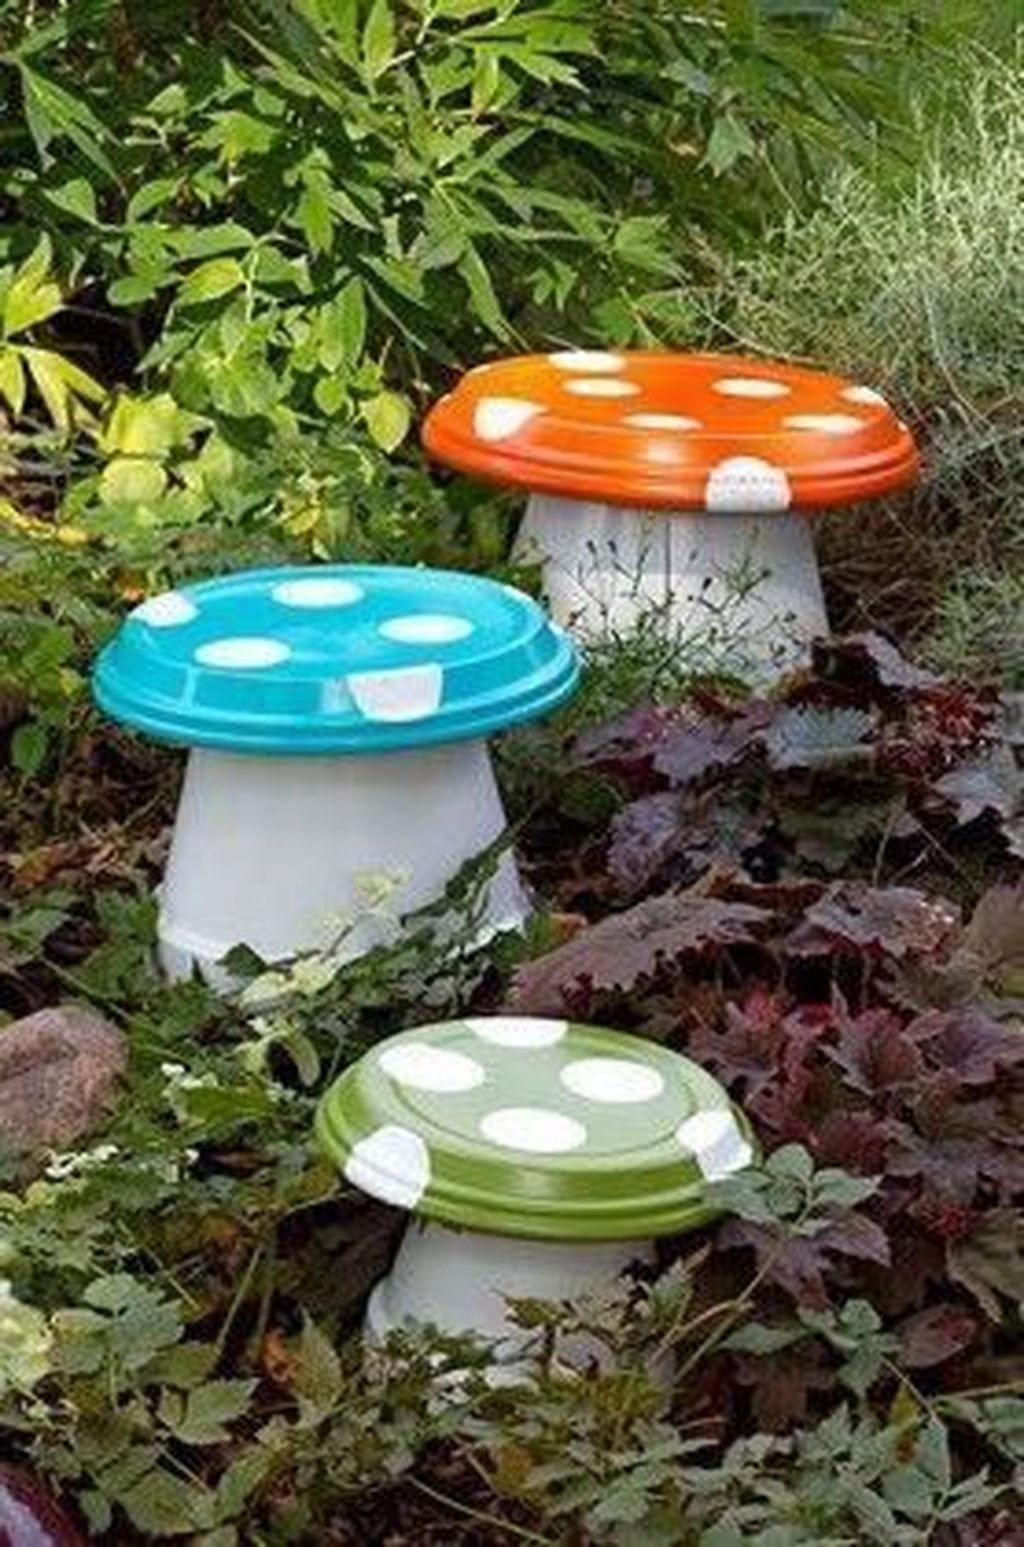 Stylish Diy Painted Garden Decoration Ideas For A Colorful Yard 20